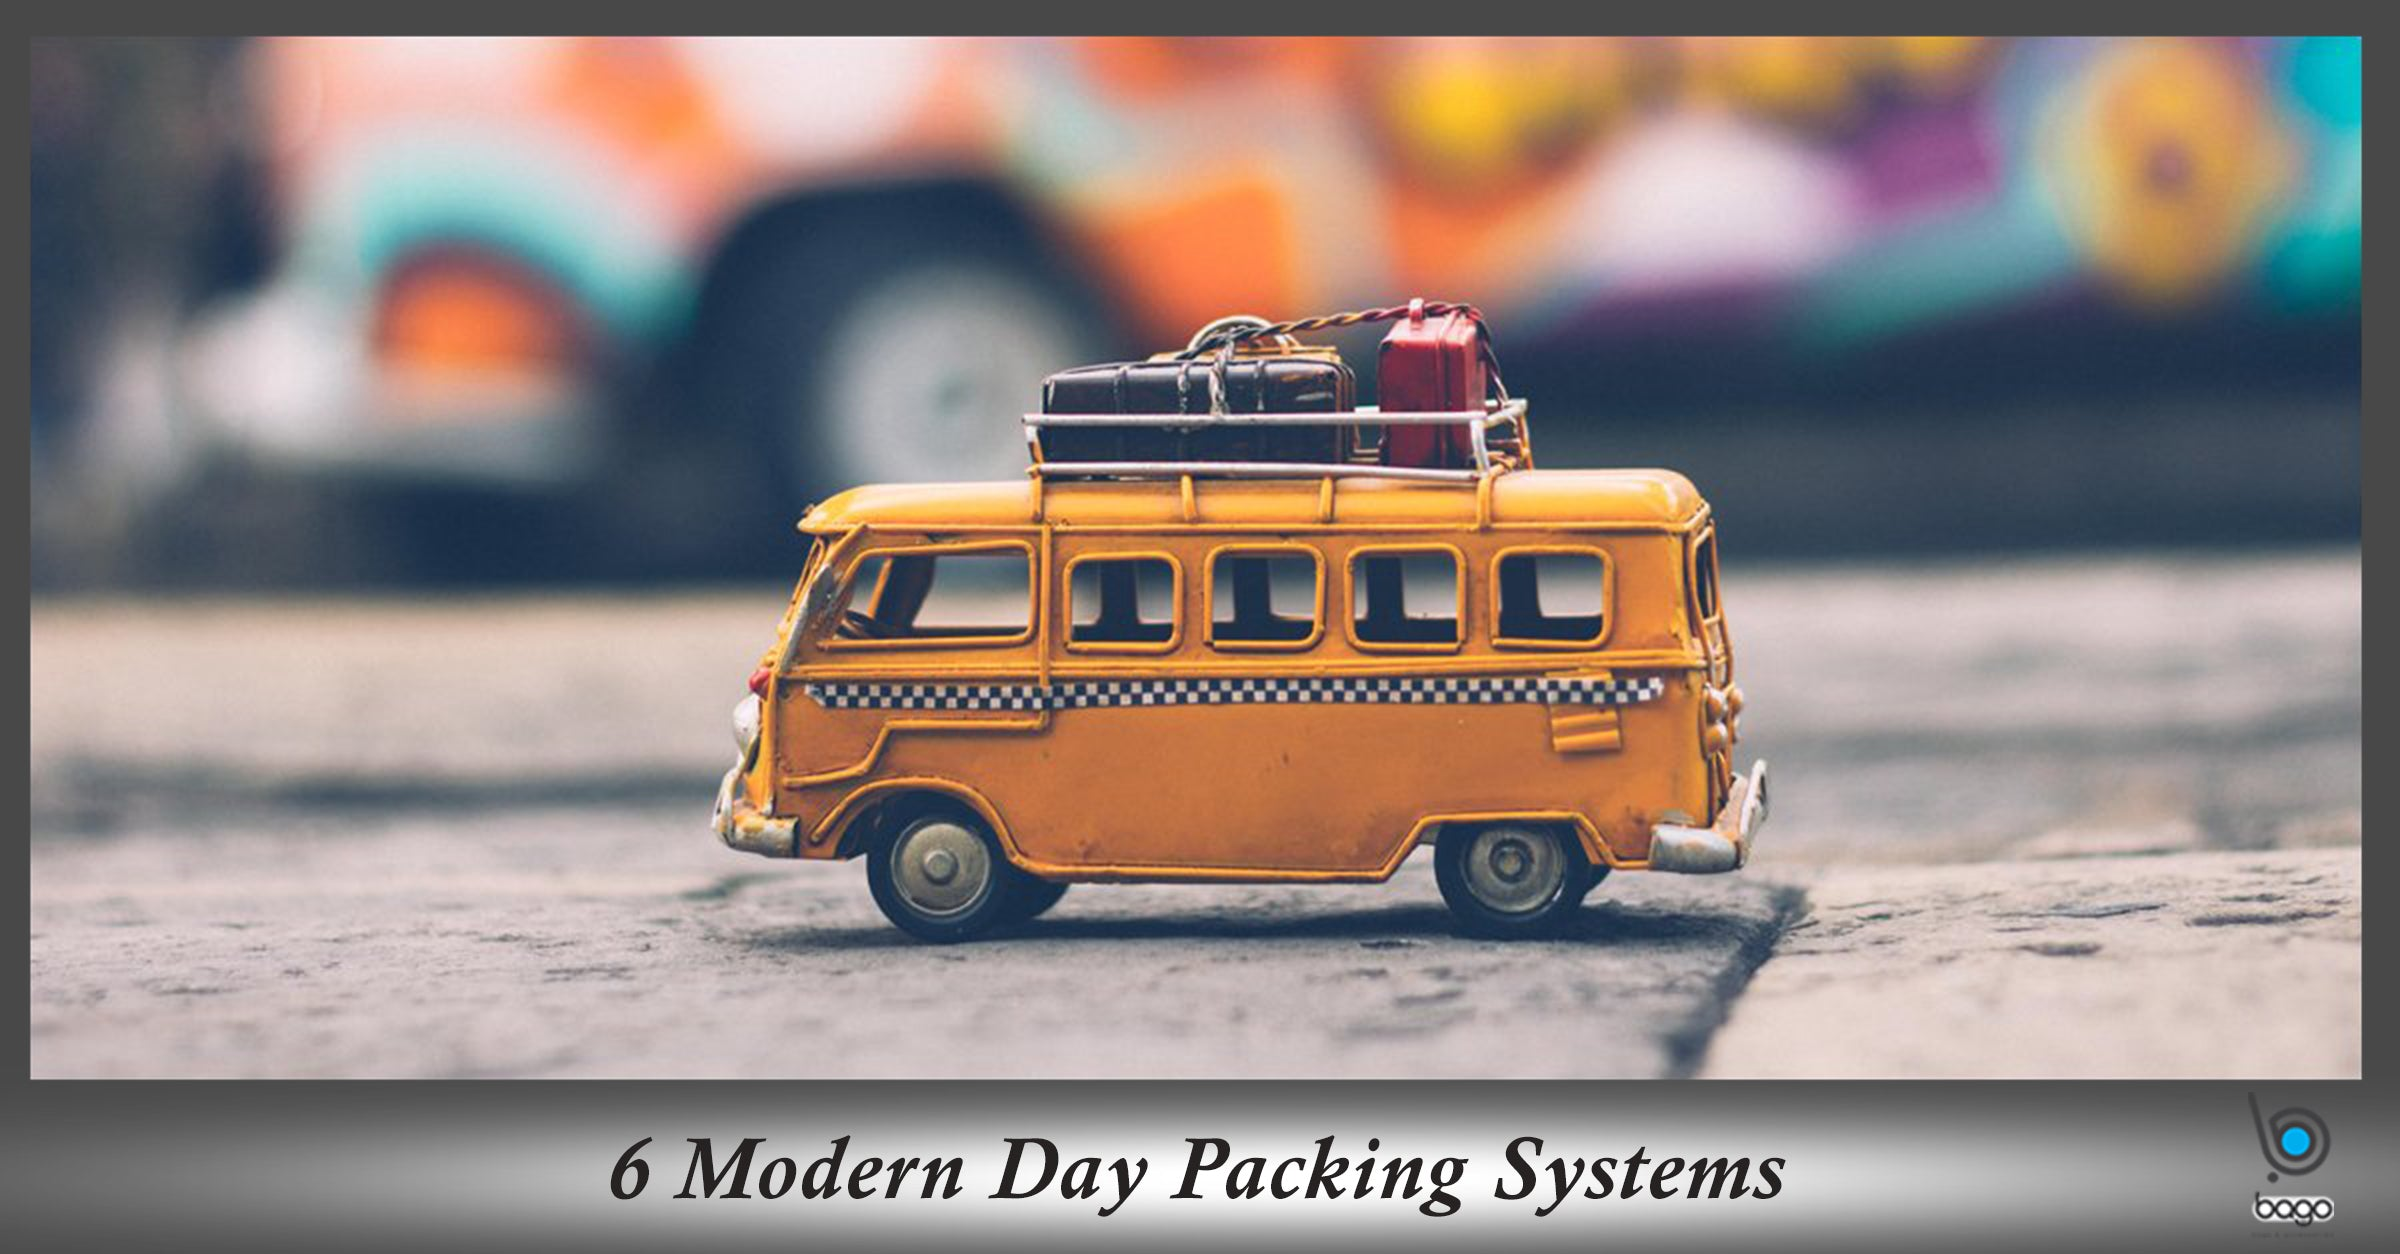 6 Modern Day Packing Systems